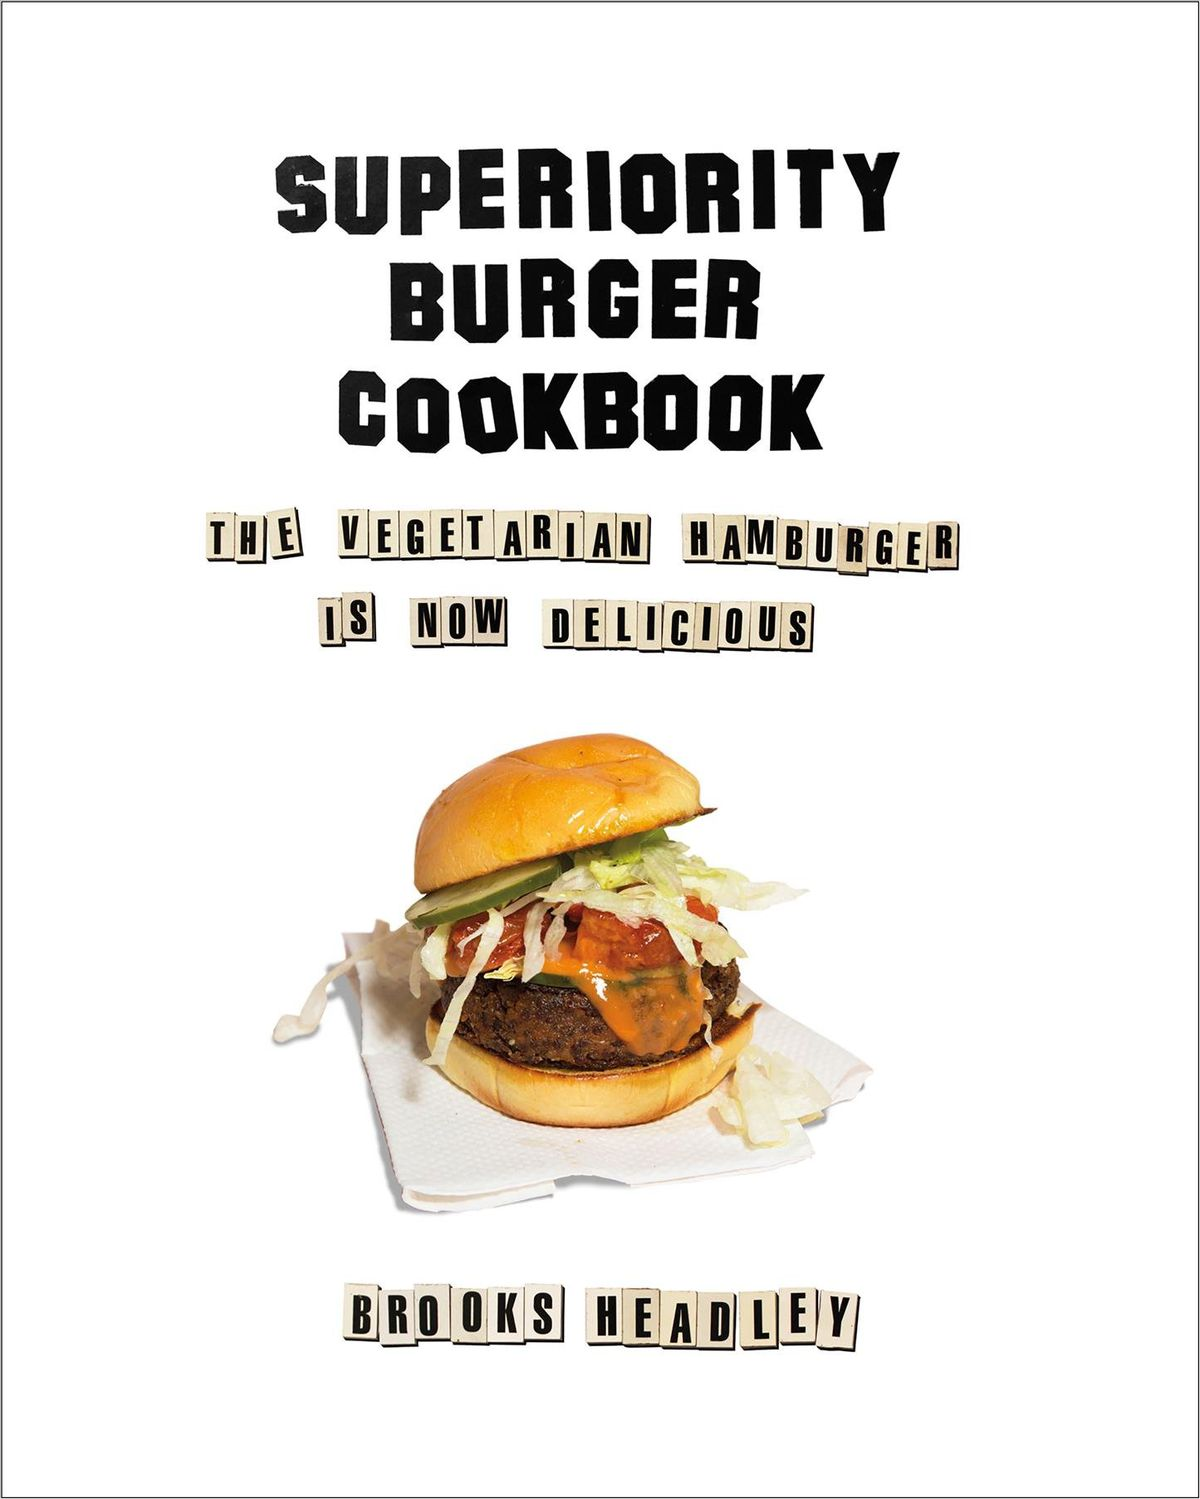 The Superiority Burger Cookbook by Brooks Headley, one of the best cookbooks chosen by Eater writers